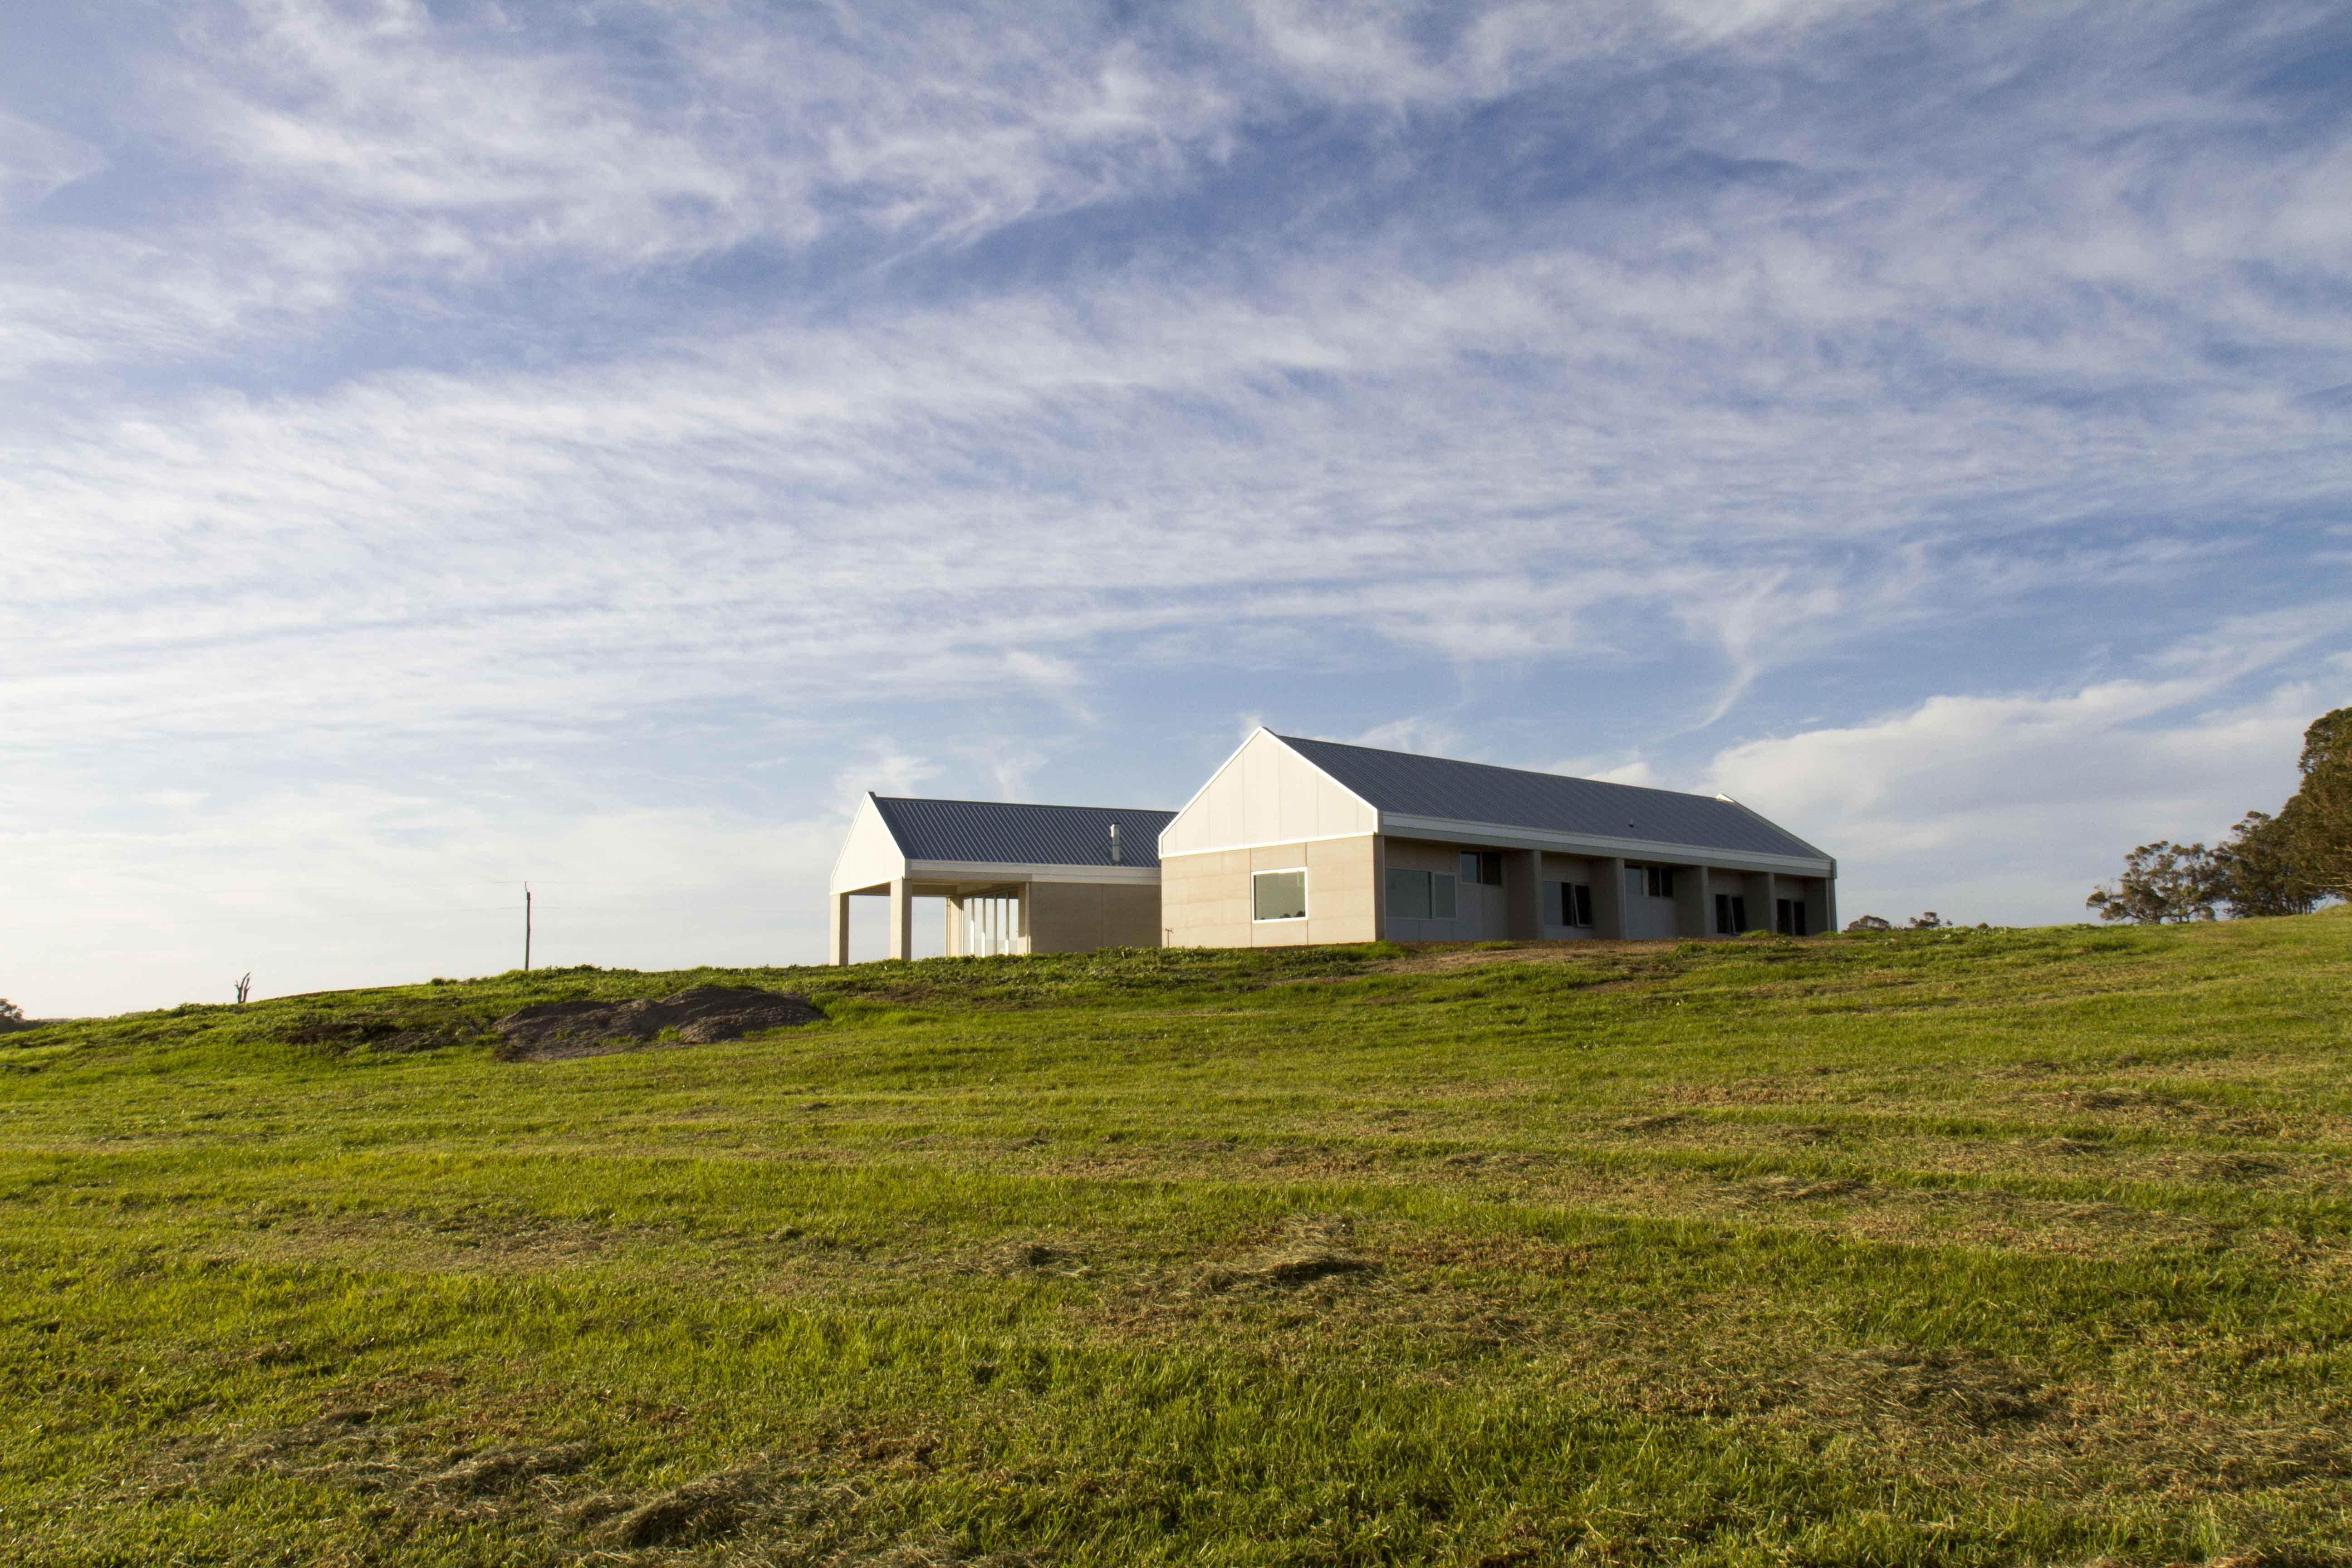 Gallery Of The Farm House By Ehdo Architecture Local Design And Interiors Margaret River, Wa Image 1